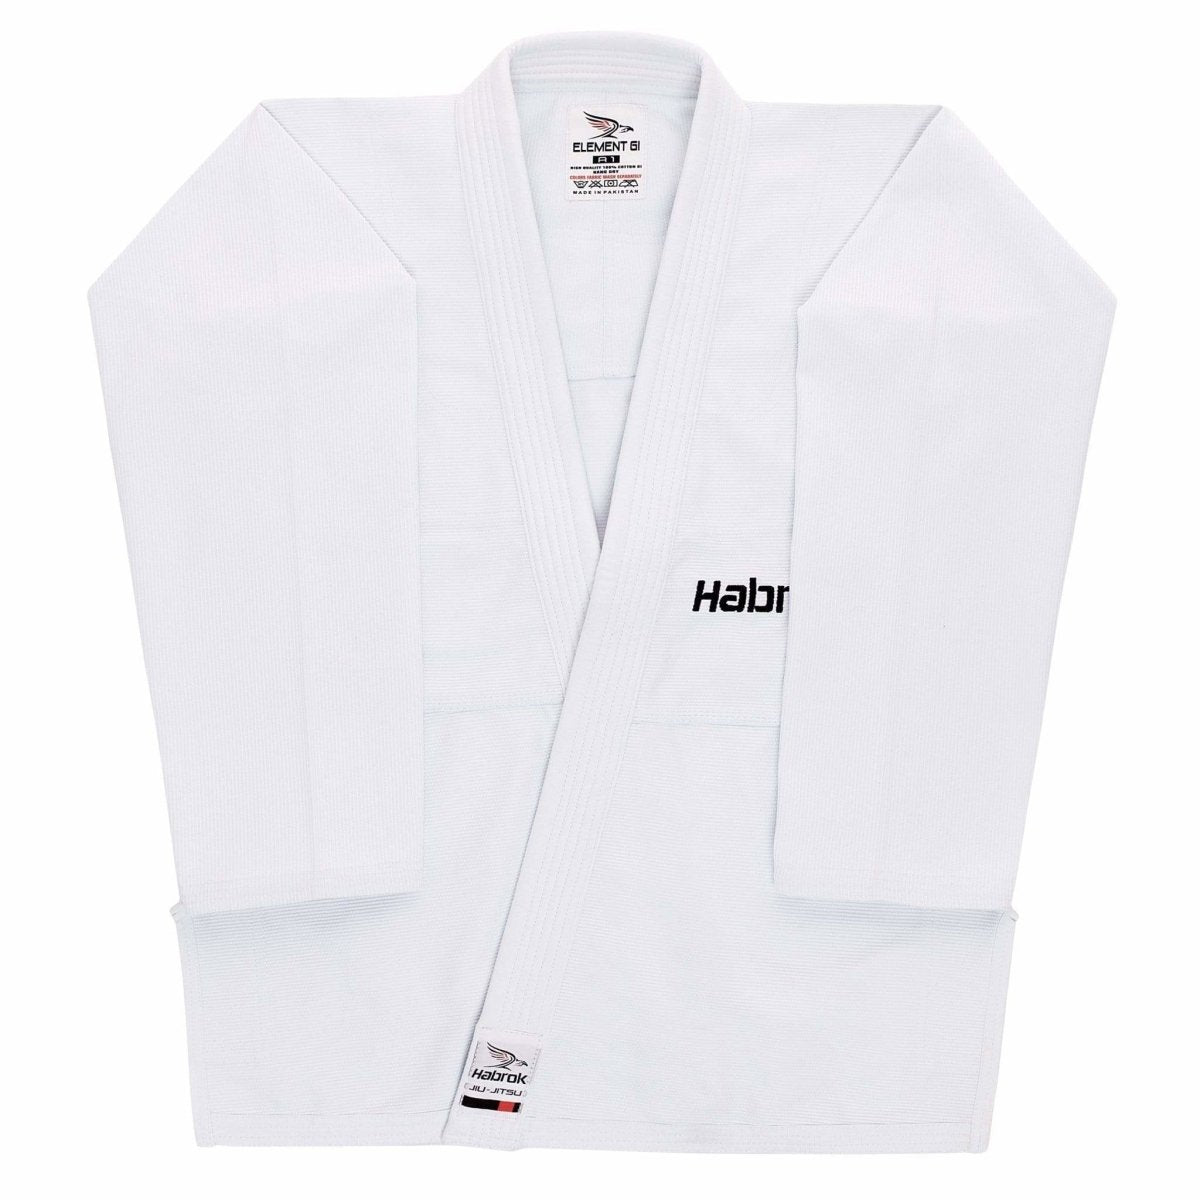 Habrok Jiu Jitsu Gi A00 / WHITE Element | BJJ Gi | Men | Ultra Light Weight | Jiu Jitsu GI Element | Jiu Jitsu Gi Men | Habrok | Ultra Light Weight